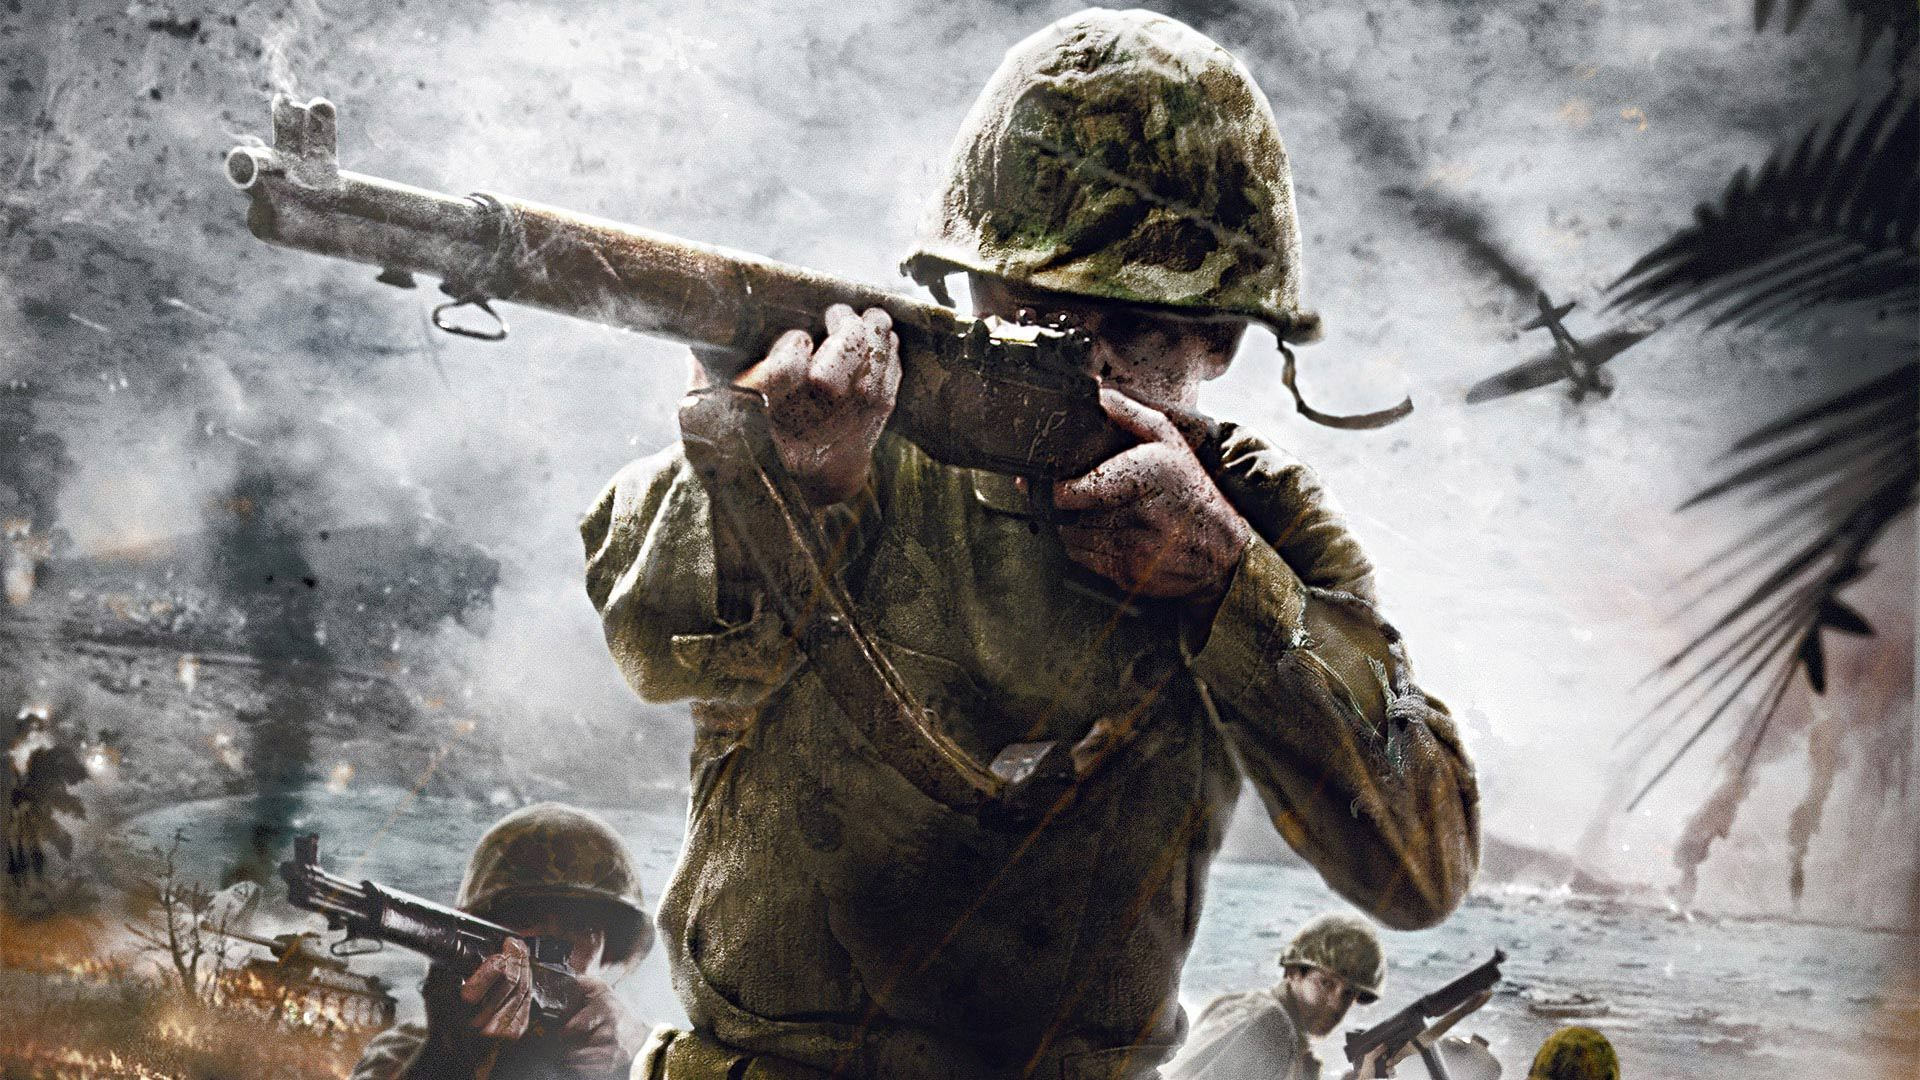 Cod waw mod tools patches clarence